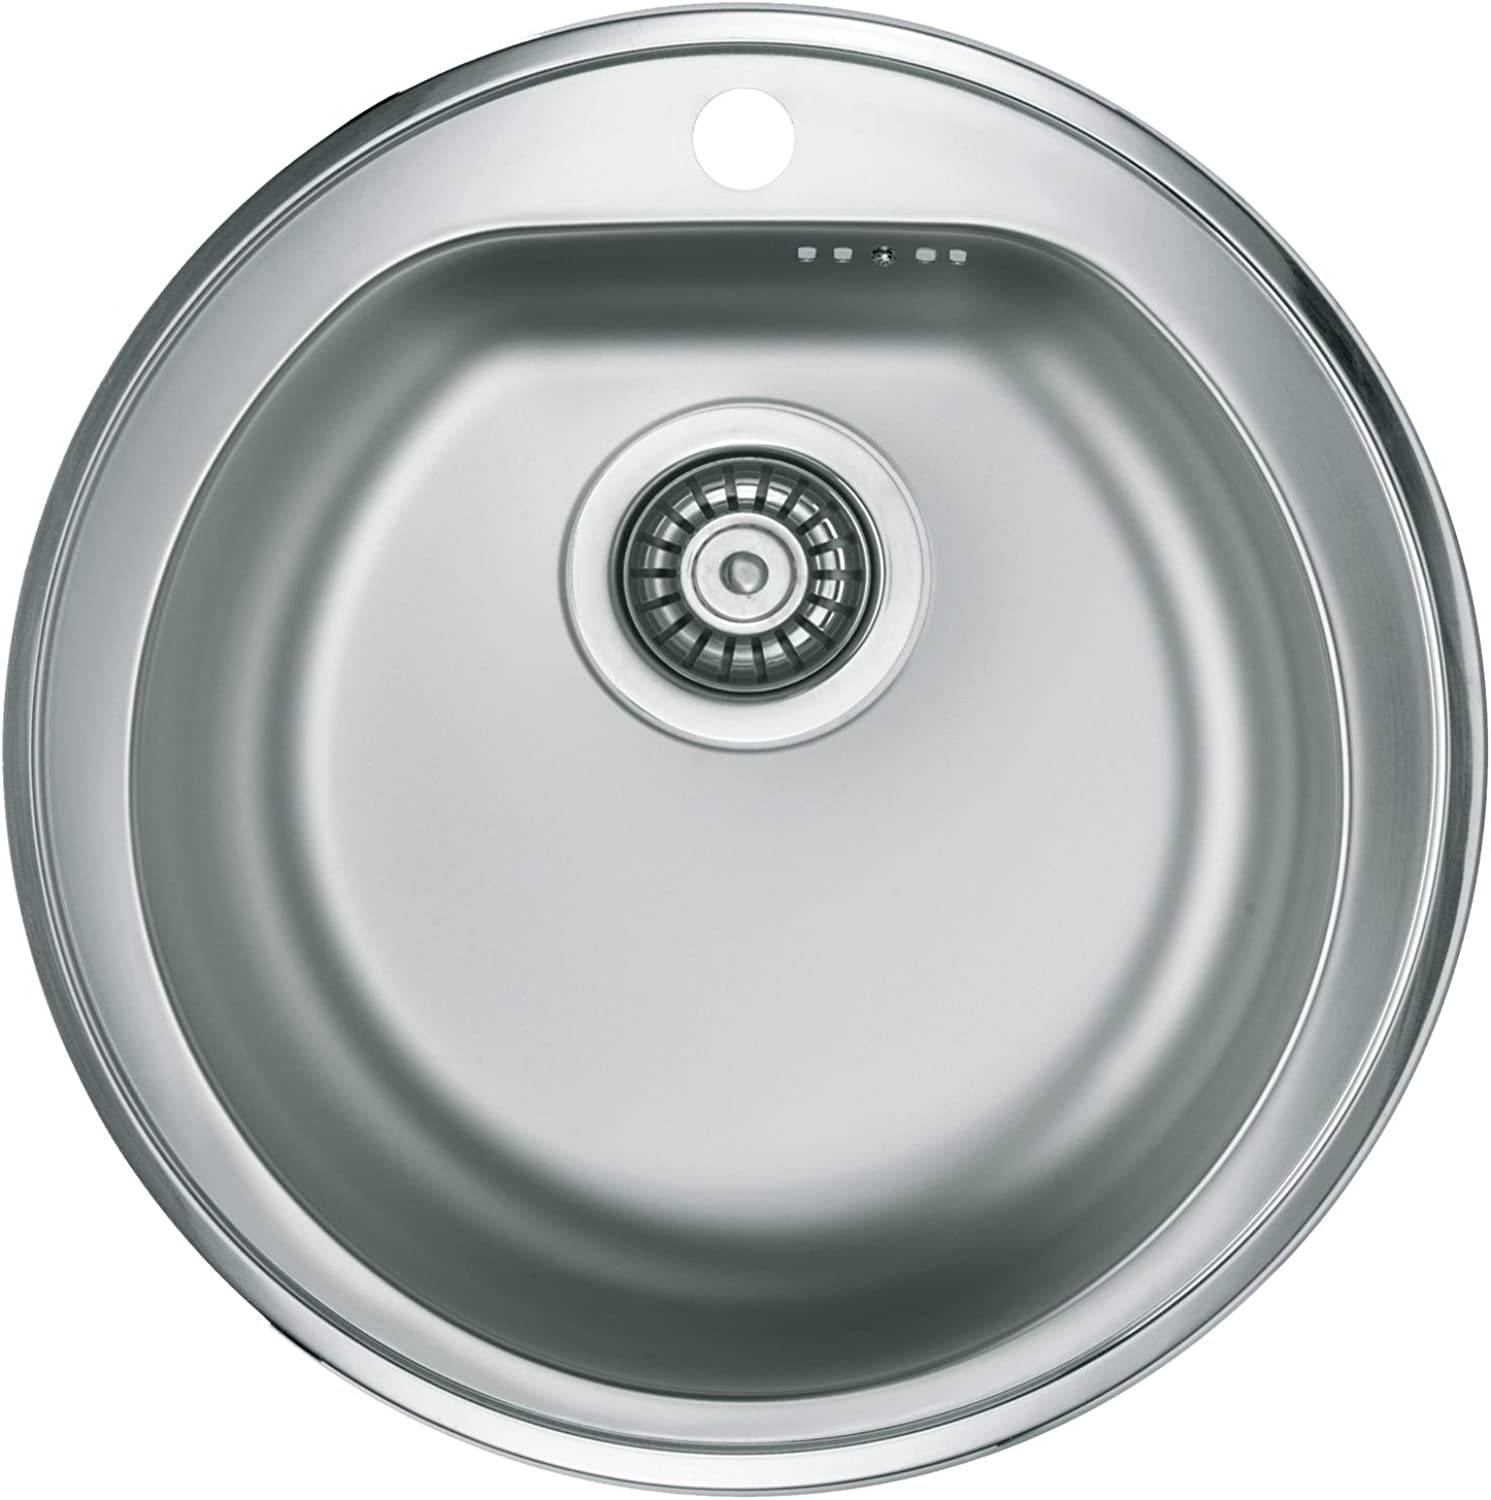 Alveus Built-in Sink Round, 18 10, Stainless Steel, with Strainer Basket, Diameter 51 cm, with 1 Drill Hole, Type  from 30, 1 Piece